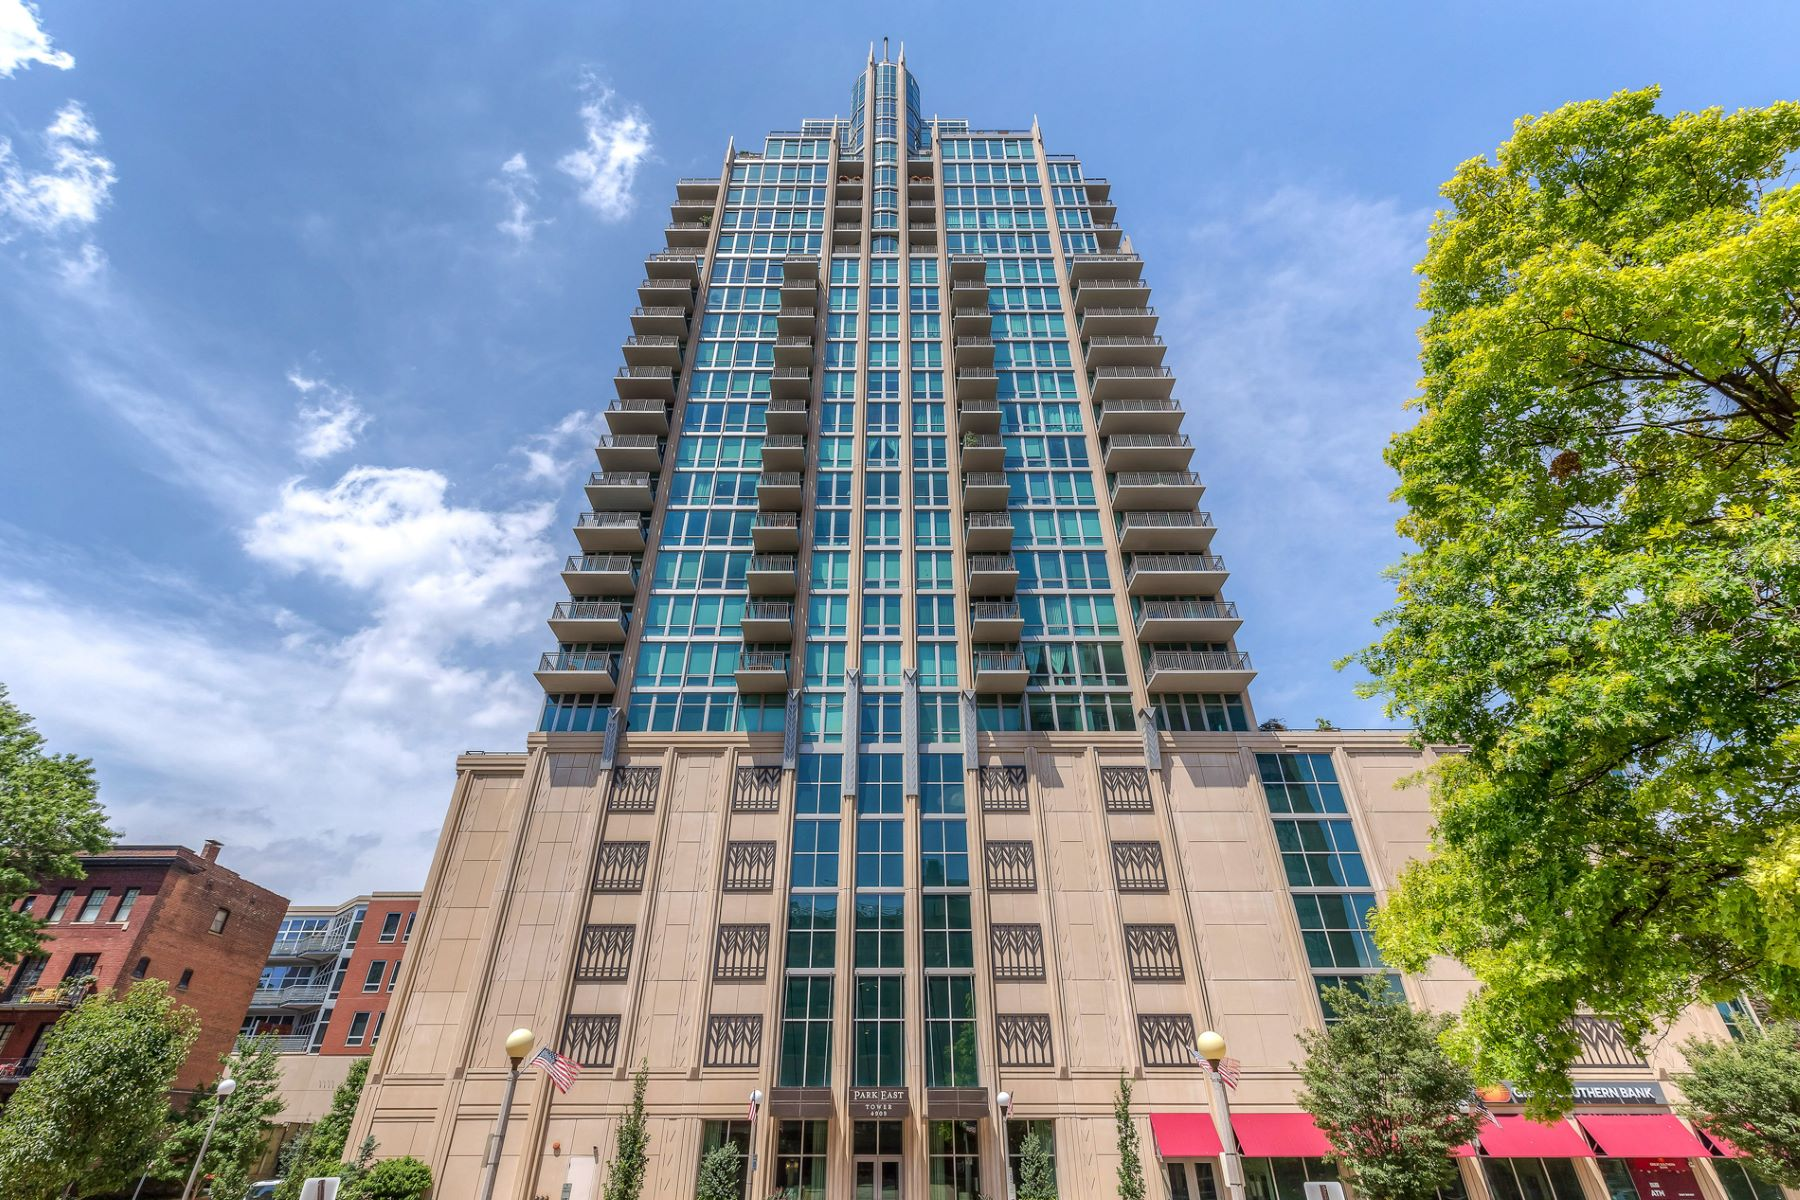 Condominium for Rent at Laclede Ave 4909 Laclede Ave # 1605 St. Louis, Missouri 63108 United States